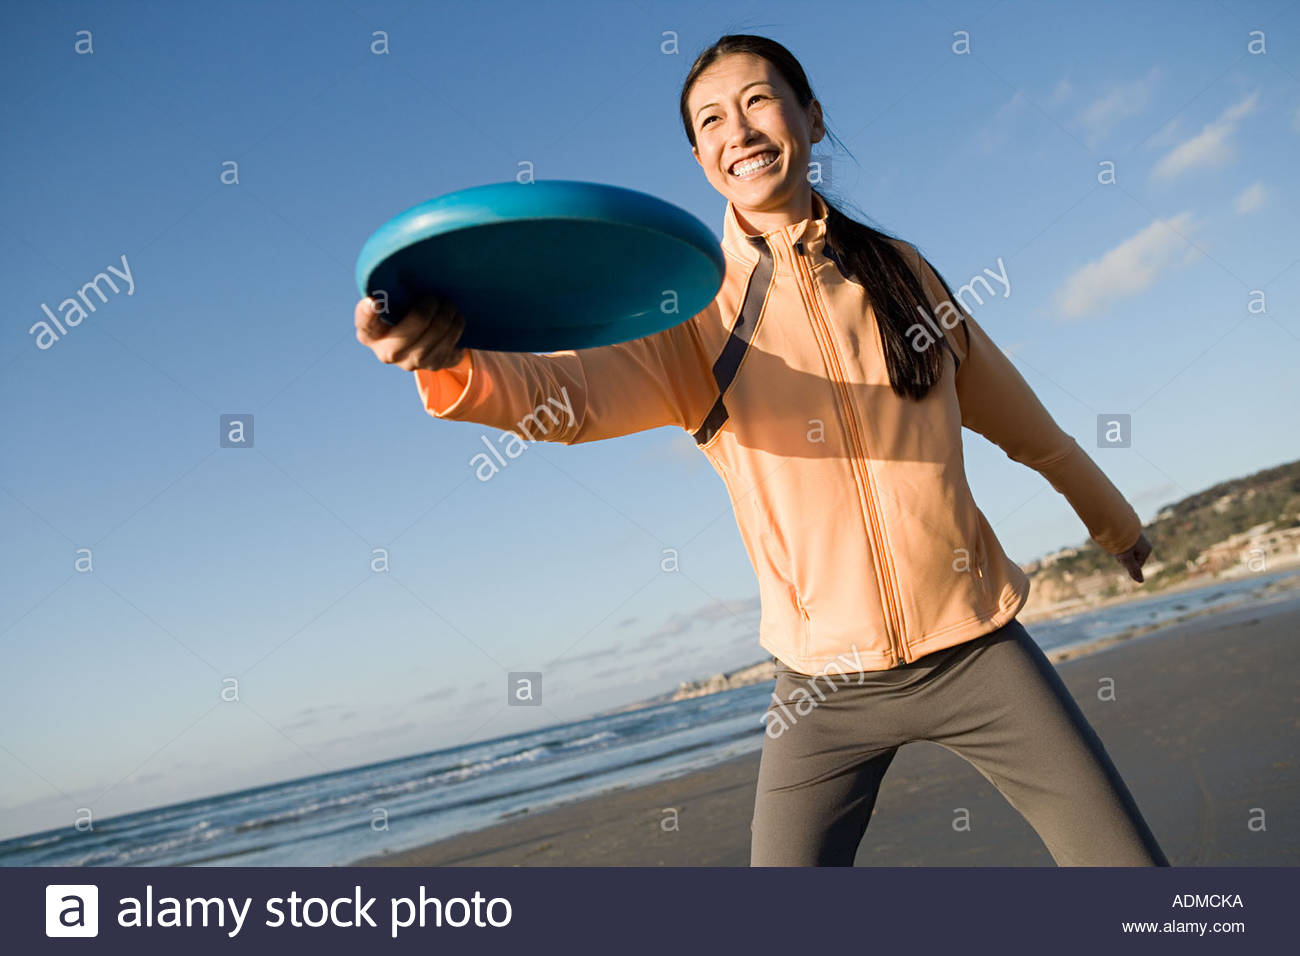 Woman throwing flying disc - Stock Image